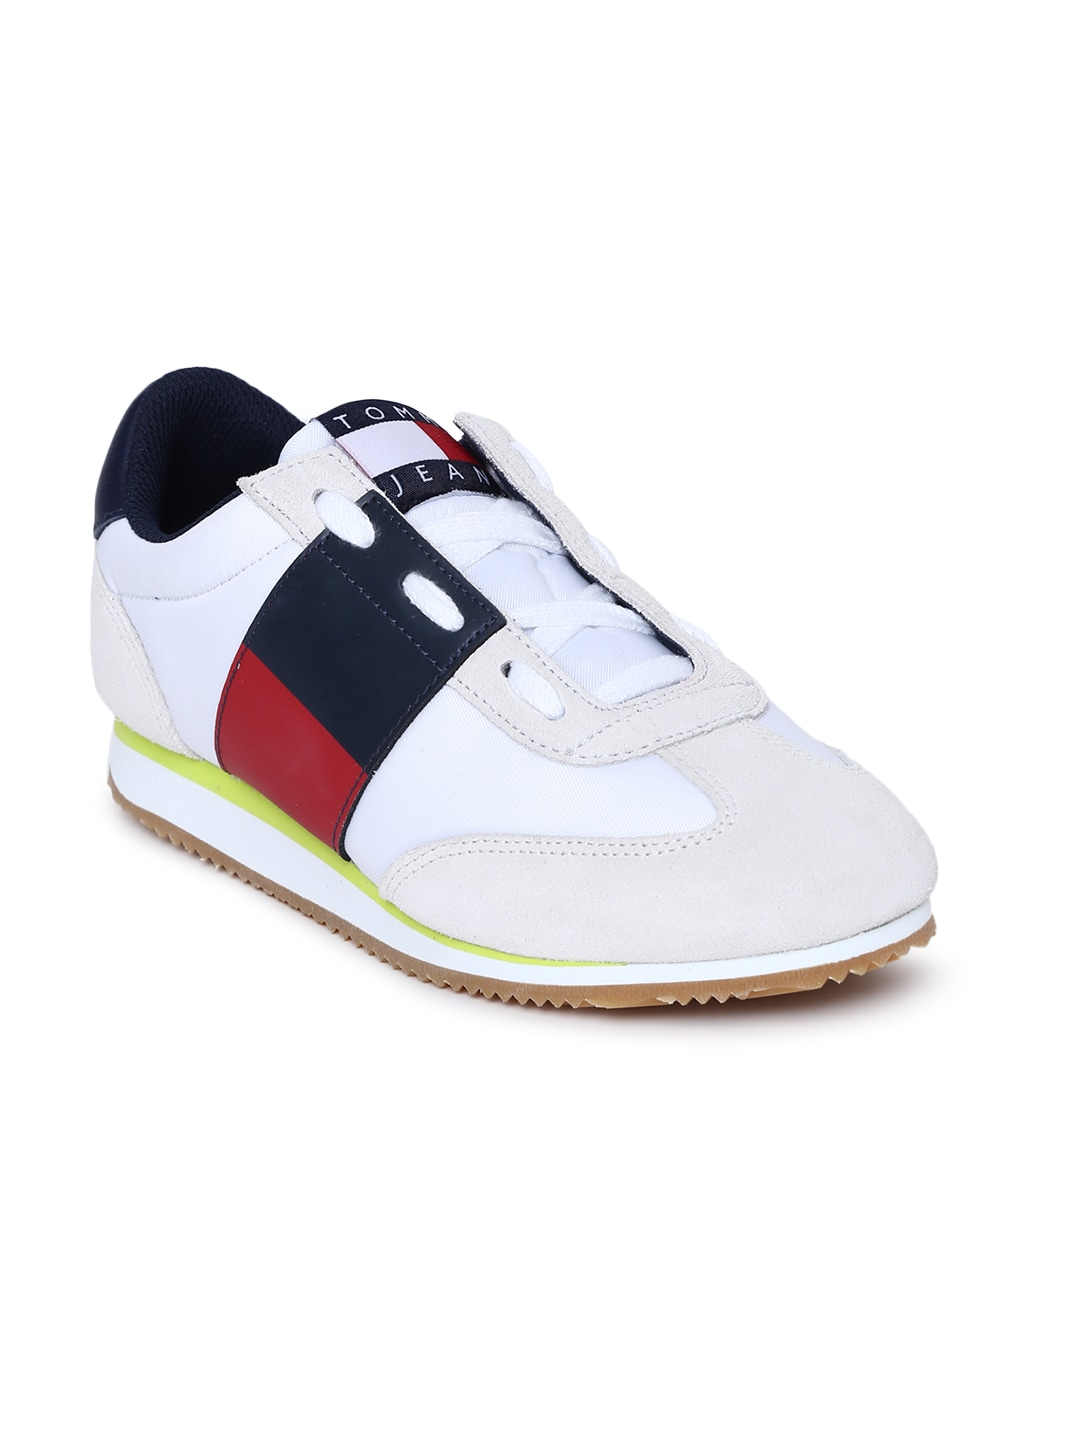 bbf5b3577d0fbb Tommy Hilfiger Shoes For Women - Buy Tommy Hilfiger Shoes For Women online  in India